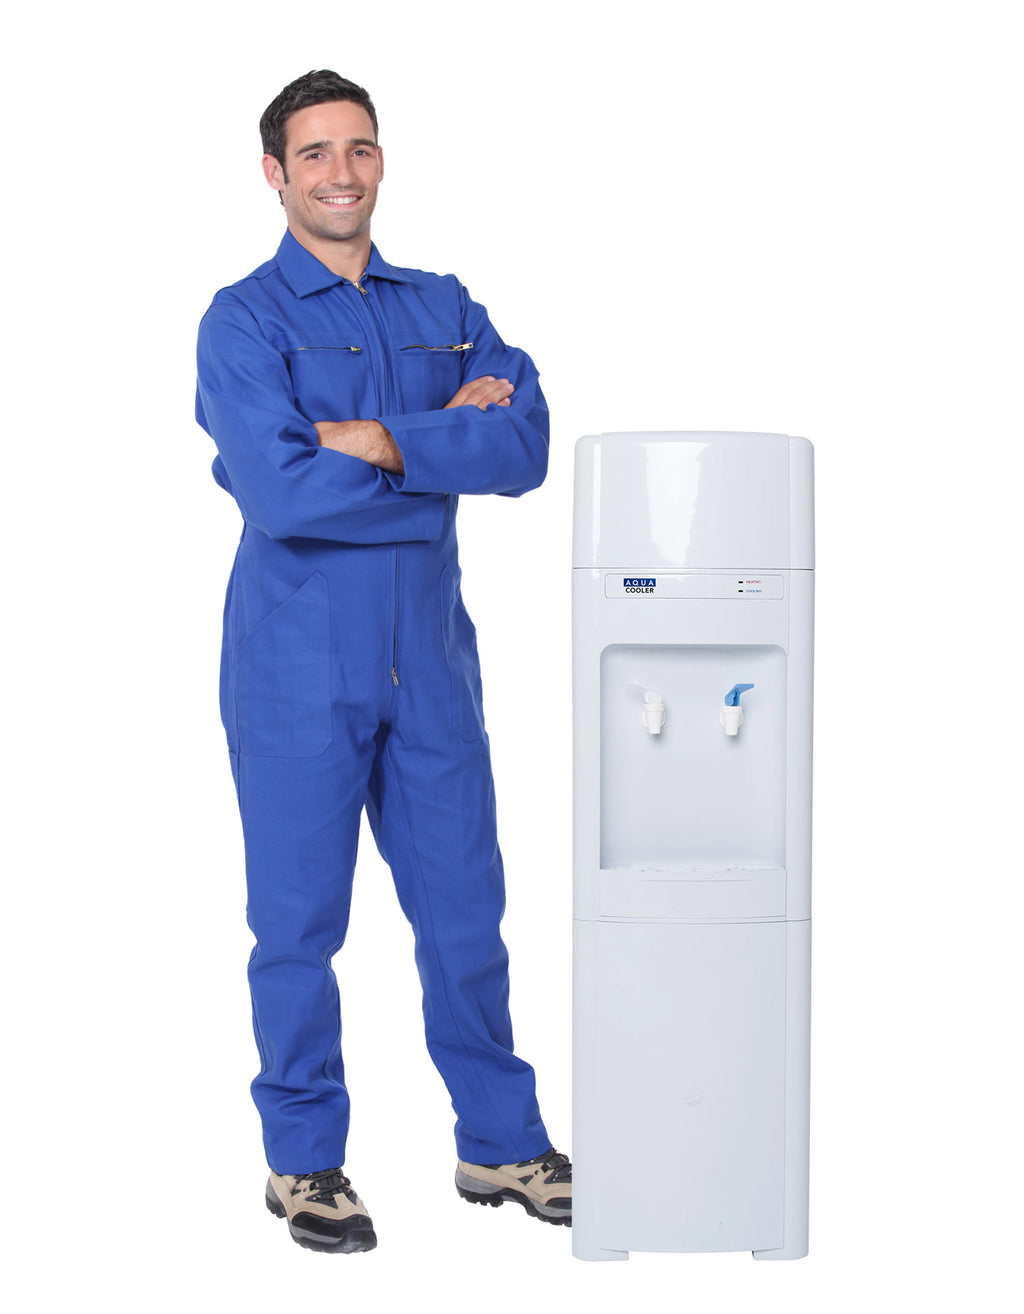 Please organise for plumbers to contact me regarding installation quote - Water Cooler